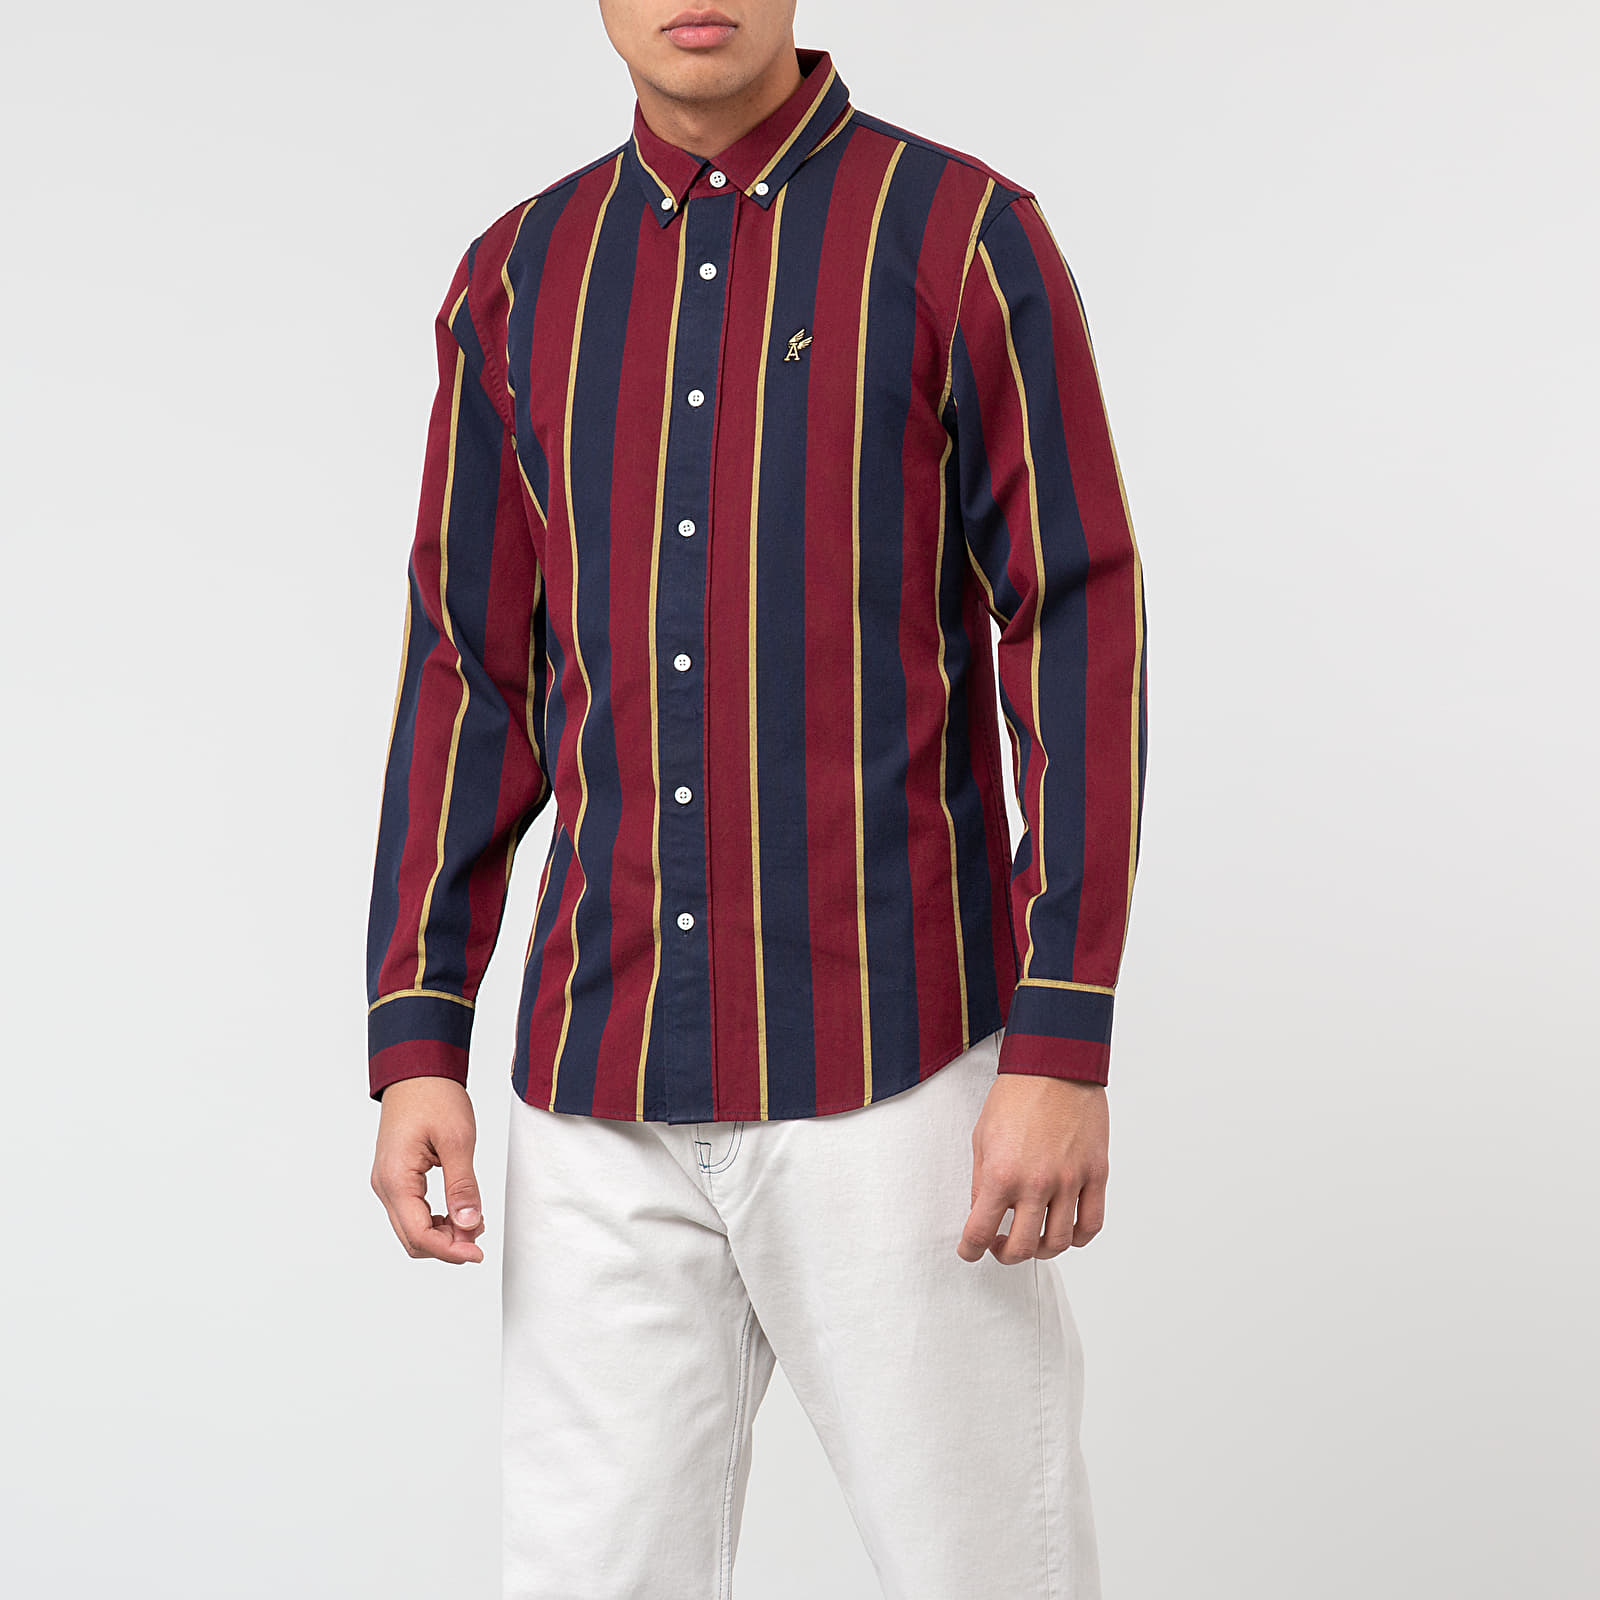 Aimé Leon Dore Striped A-Wing Oxford Shirt